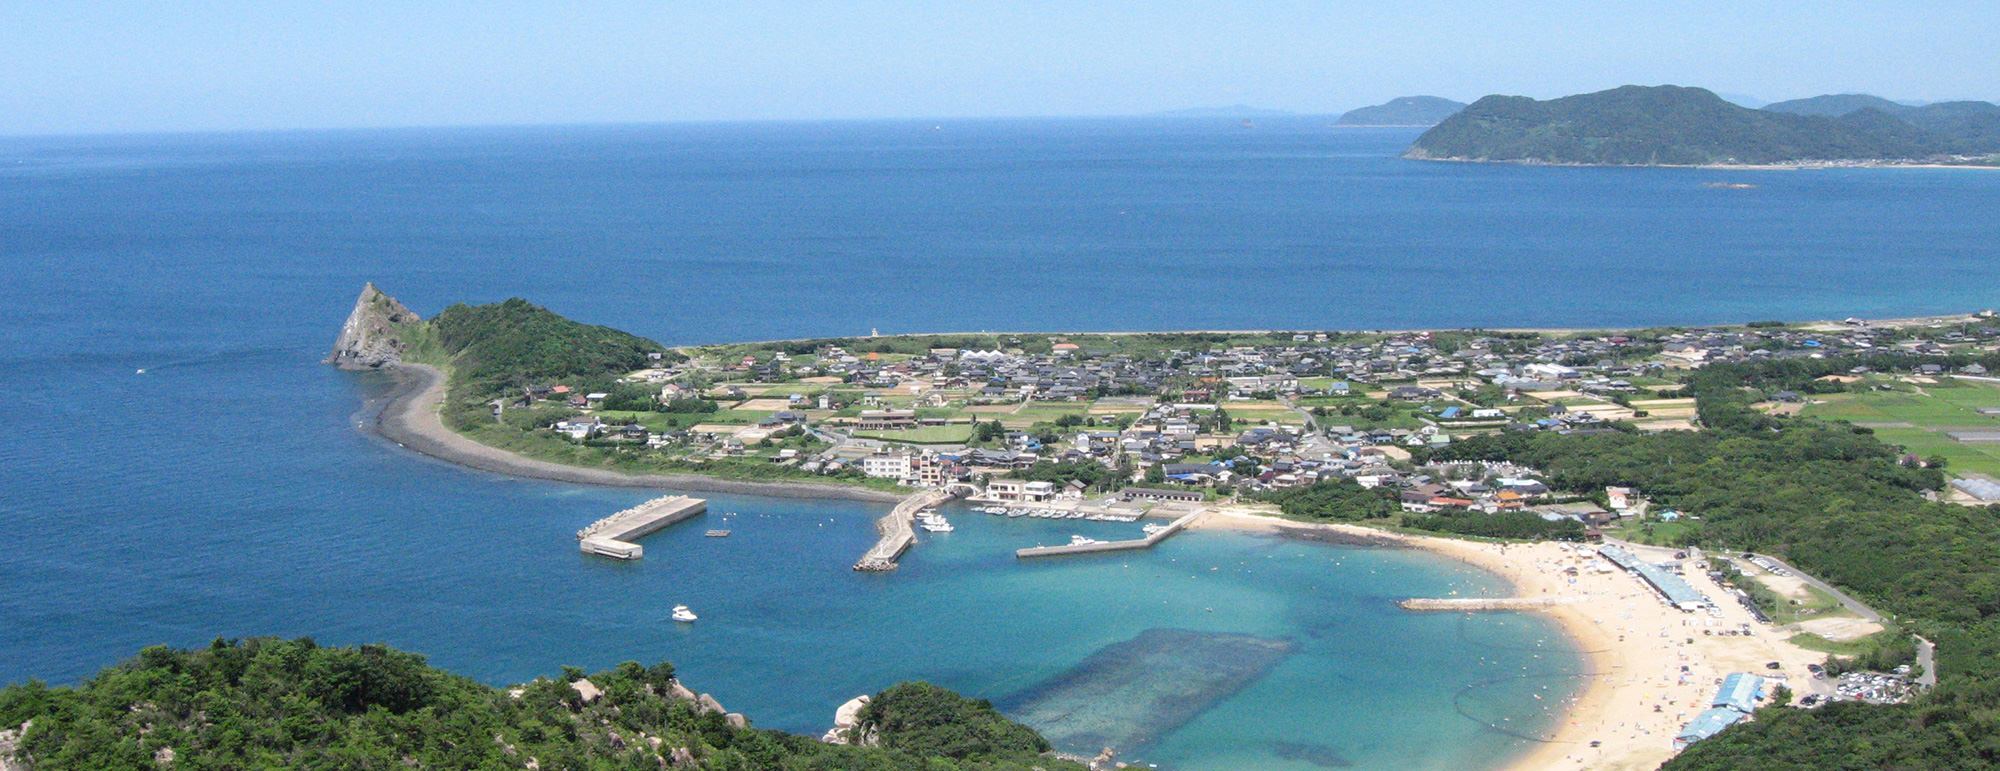 how to go to okinawa from fukuoka